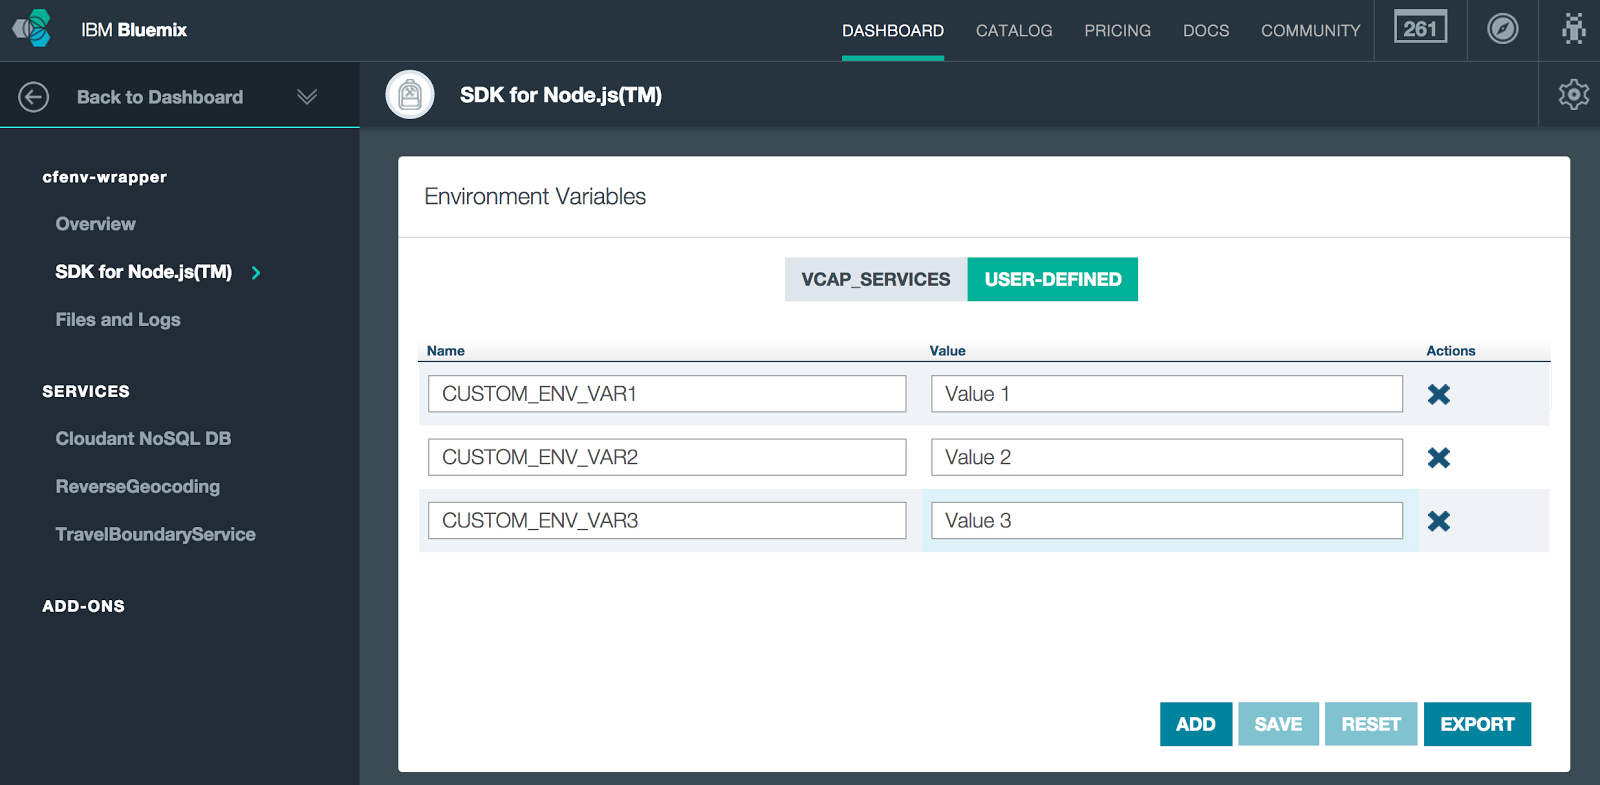 Bluemix UI: Environment Variables for cfenv-wrappe